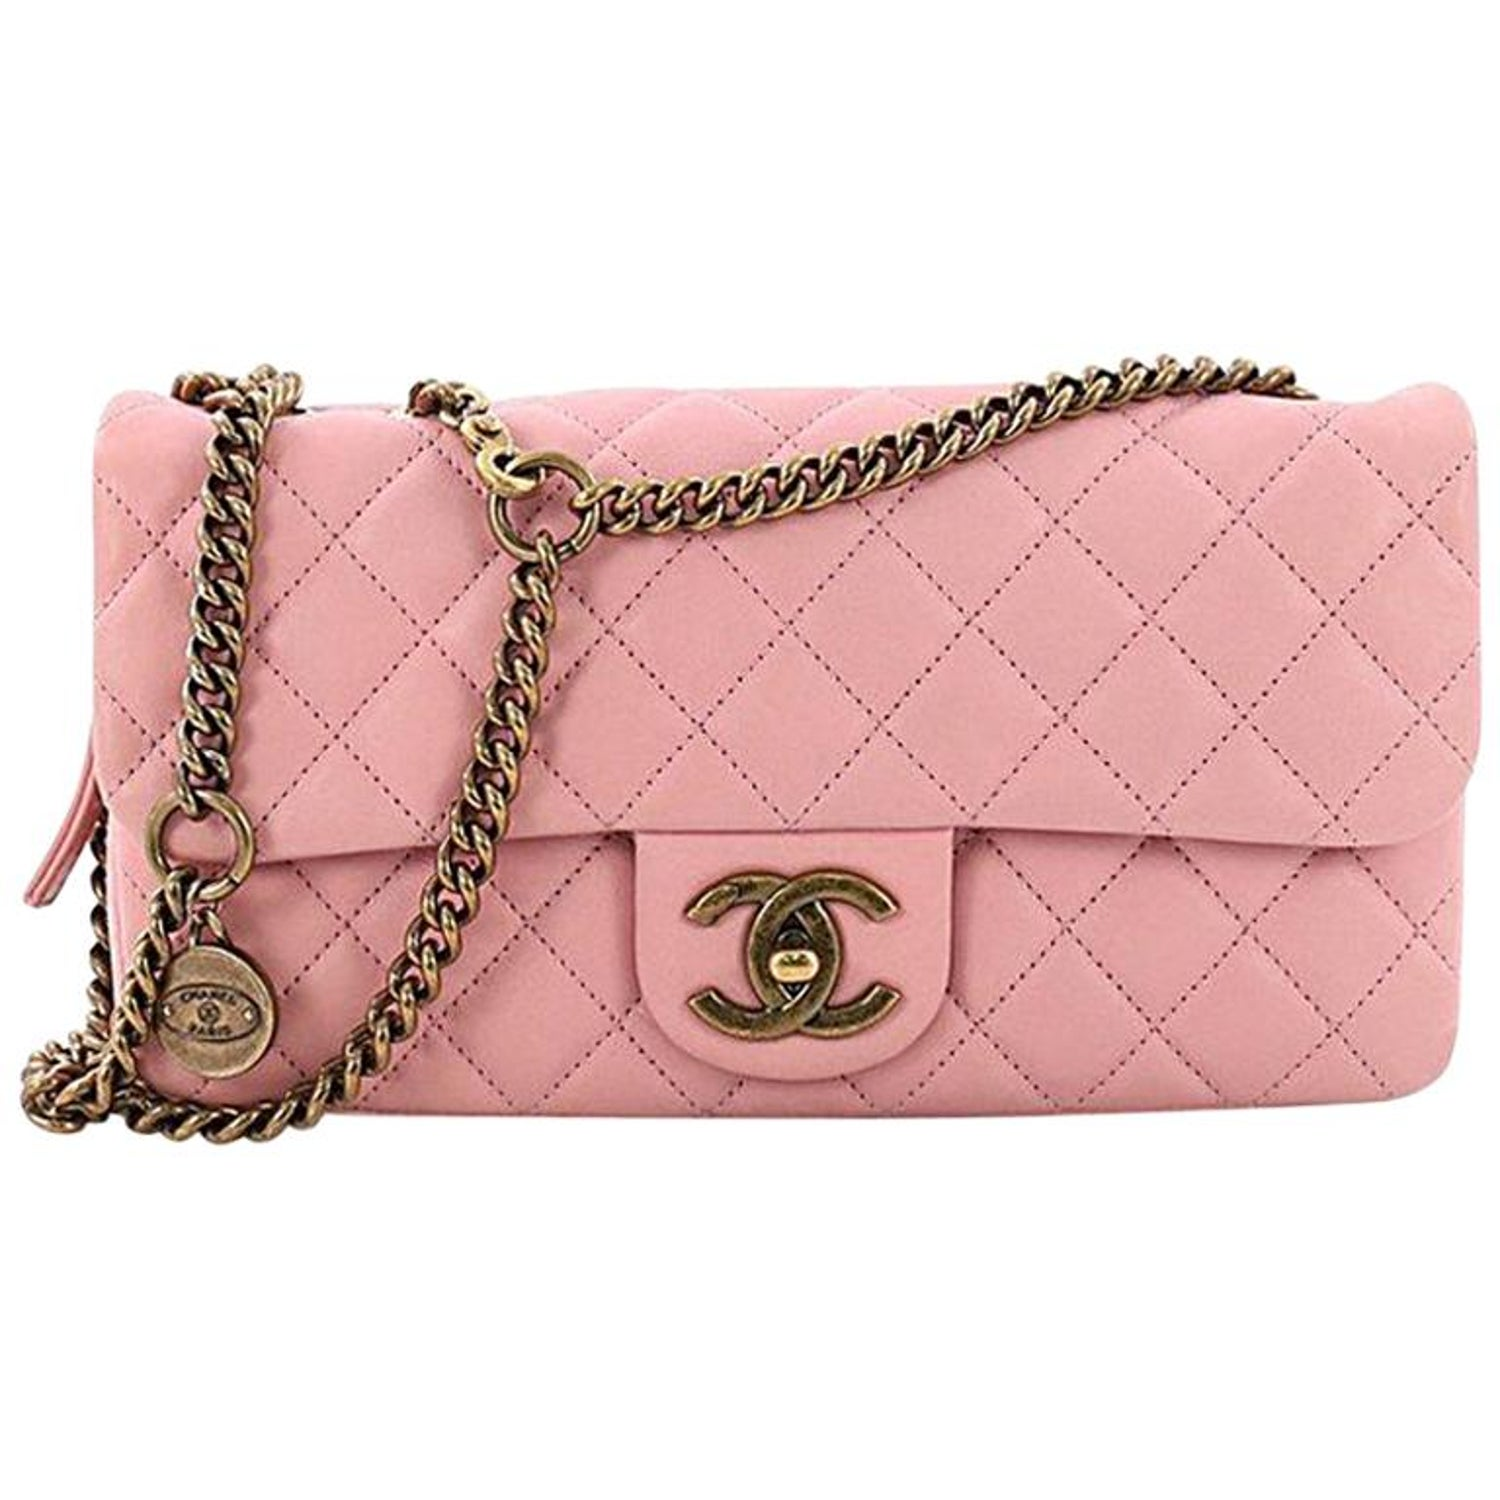 070fe16ff668 Chanel Cc Crown Flap Bag Quilted Leather Small At 1stdibs